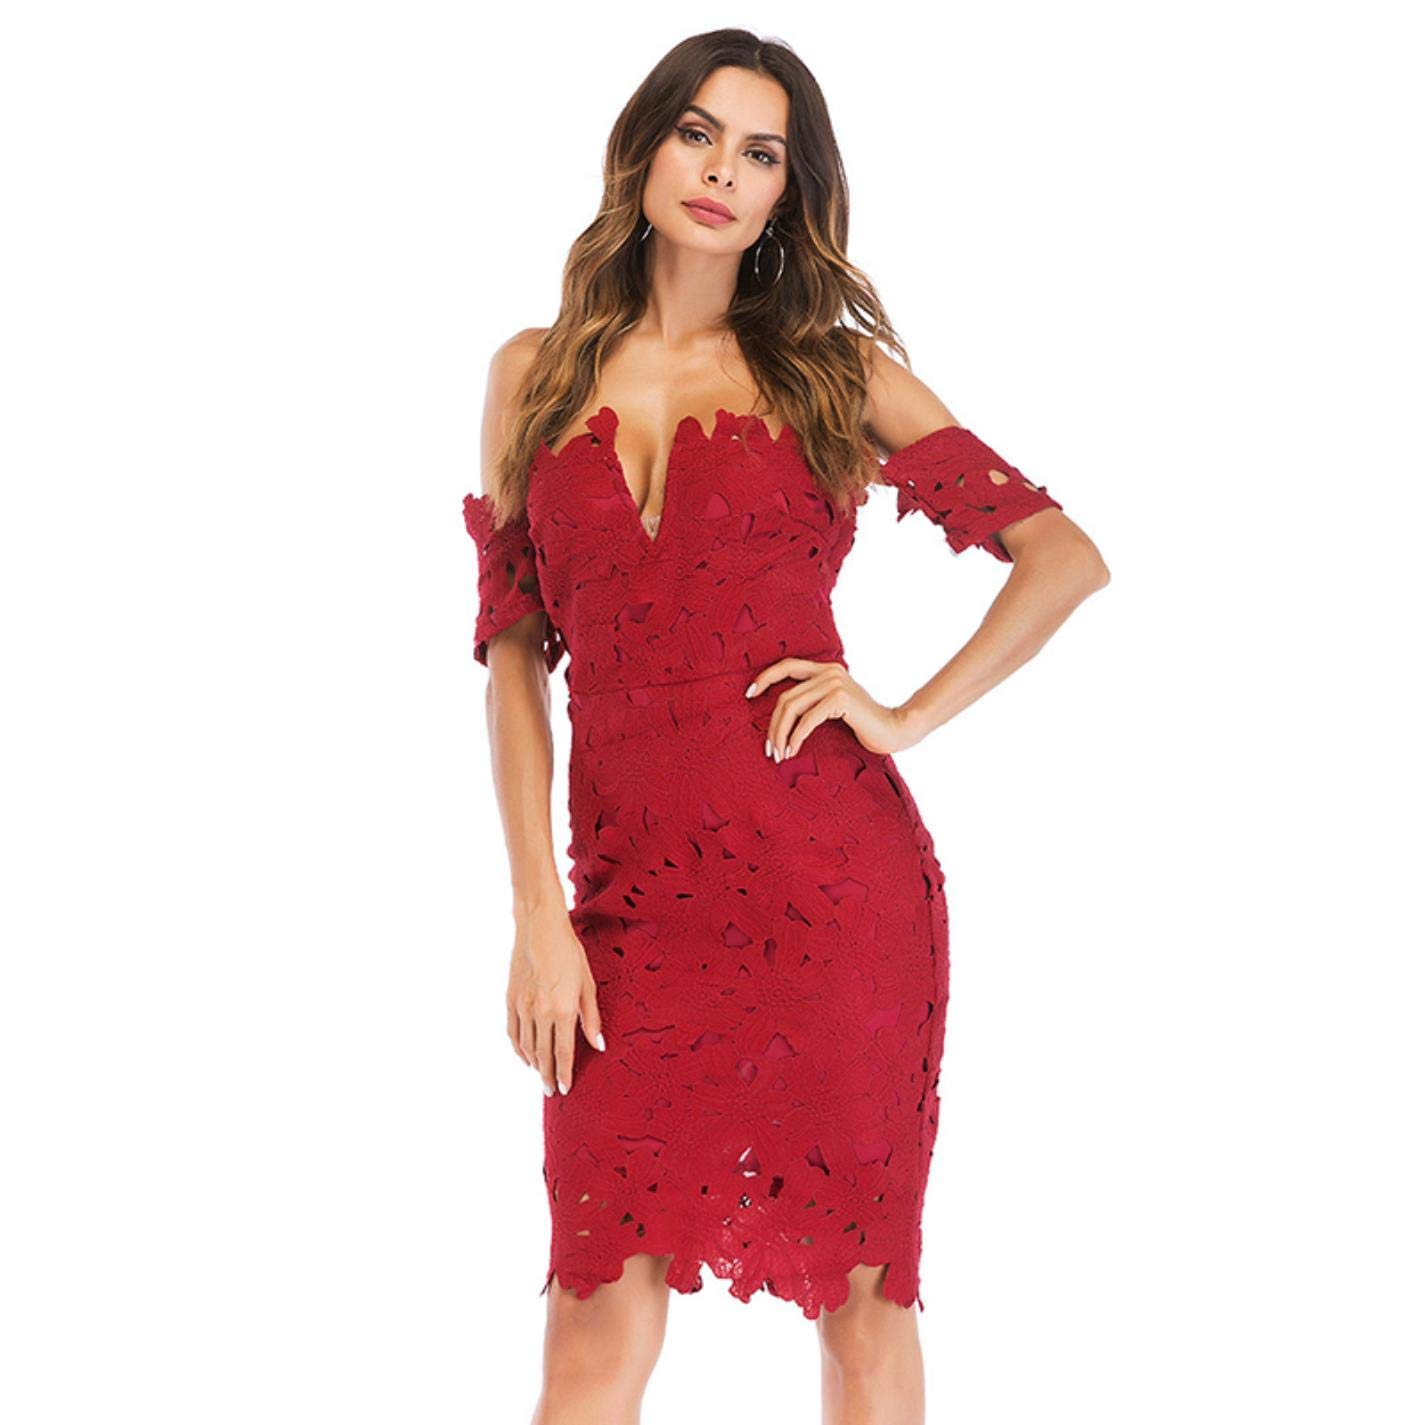 eb0429b7b5 Amazon.com  Lace Bodycon Red Wine Tube Top Dress V-Neck Halter Off Shoulder  Short  Clothing